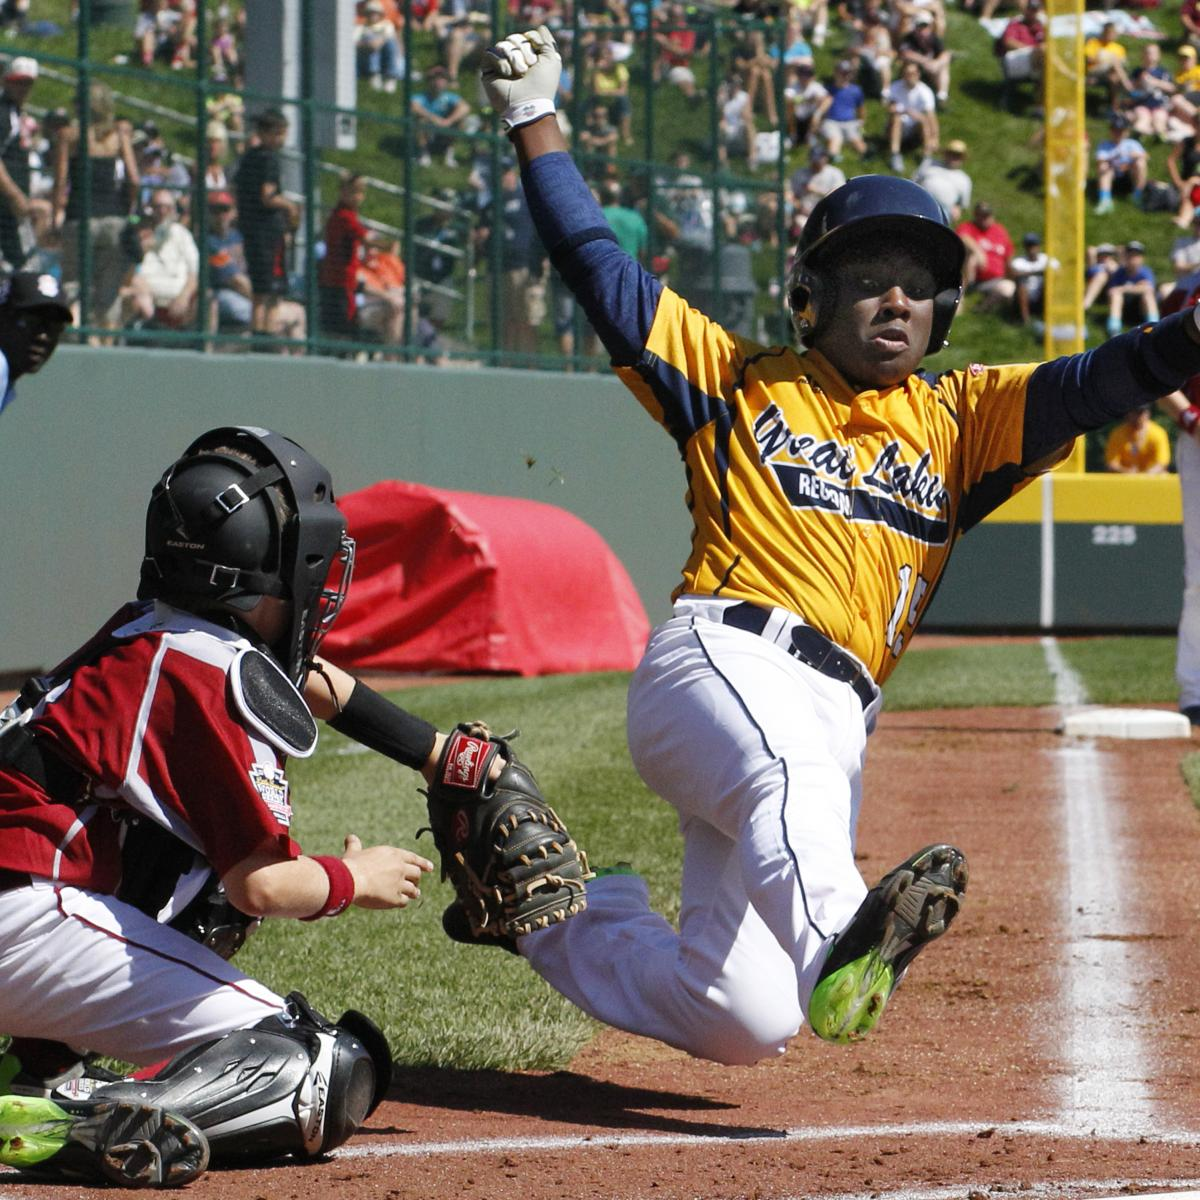 little league world series - 1125×751